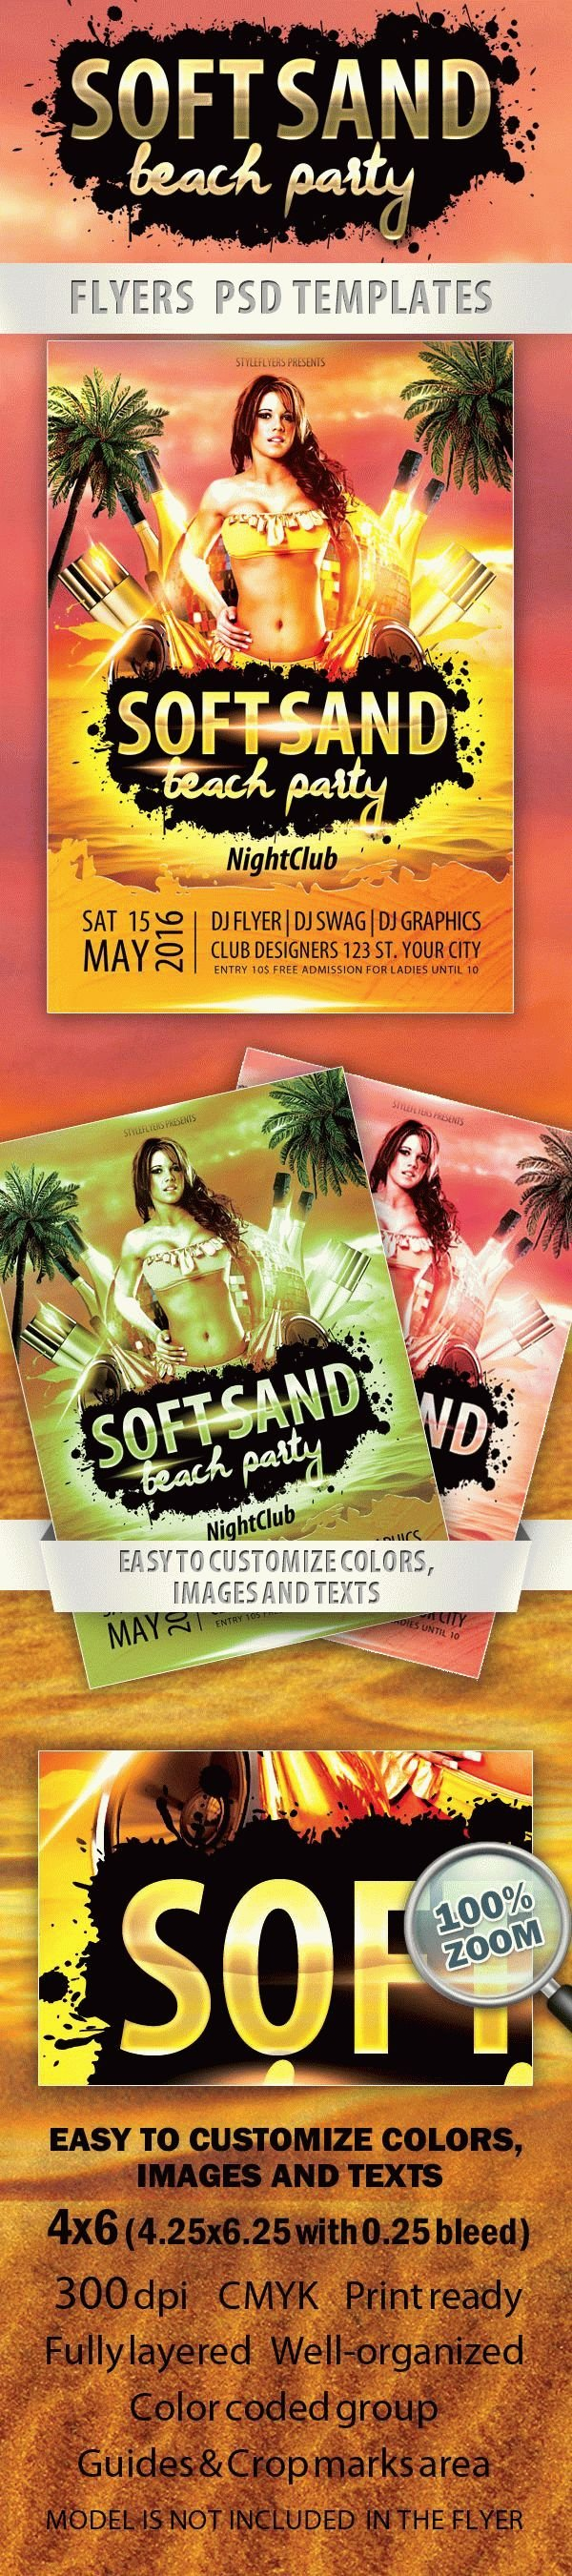 Soft Sand Beach Party